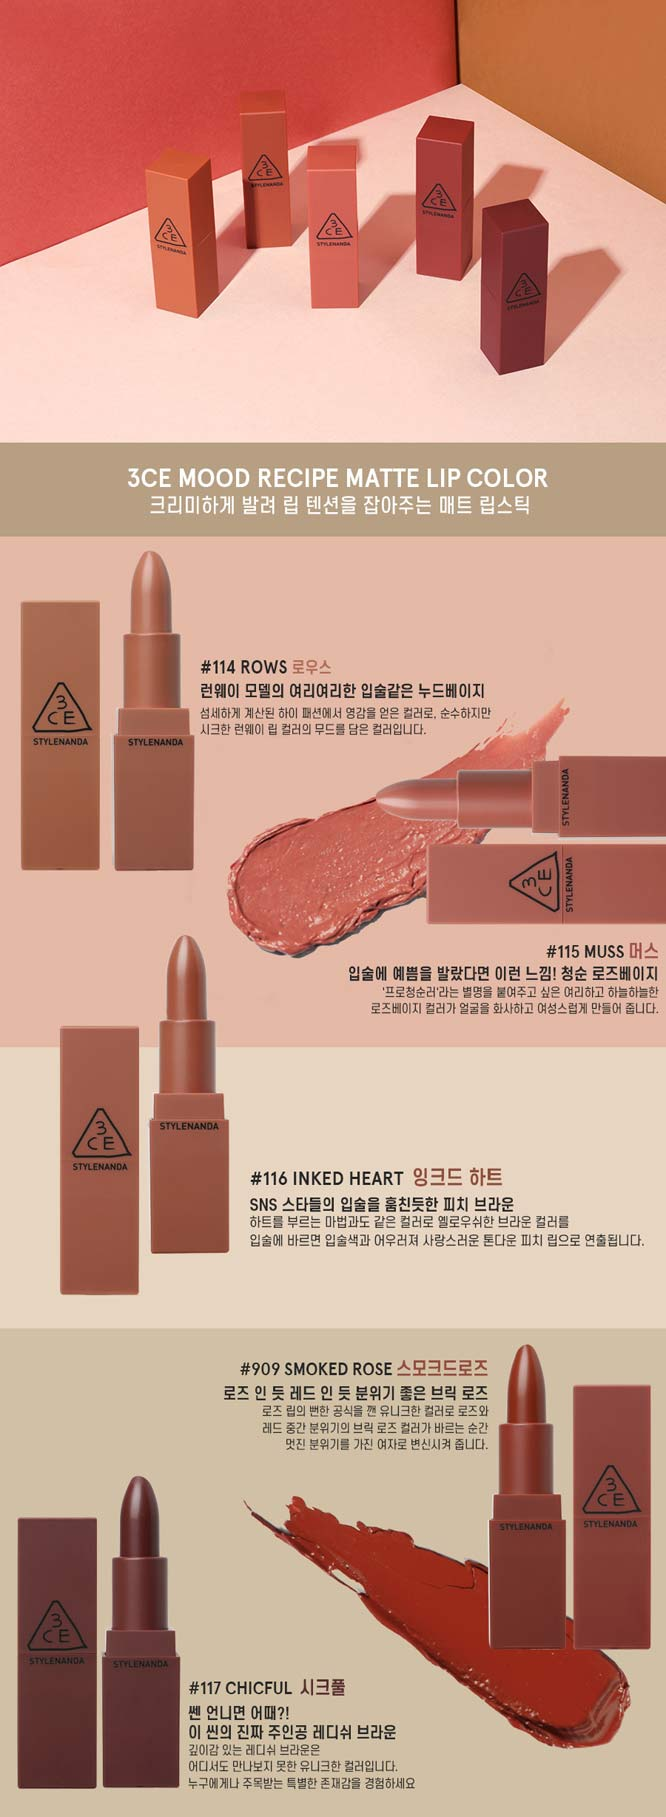 3CE Mood Recipe Matte Lip Color #114_1